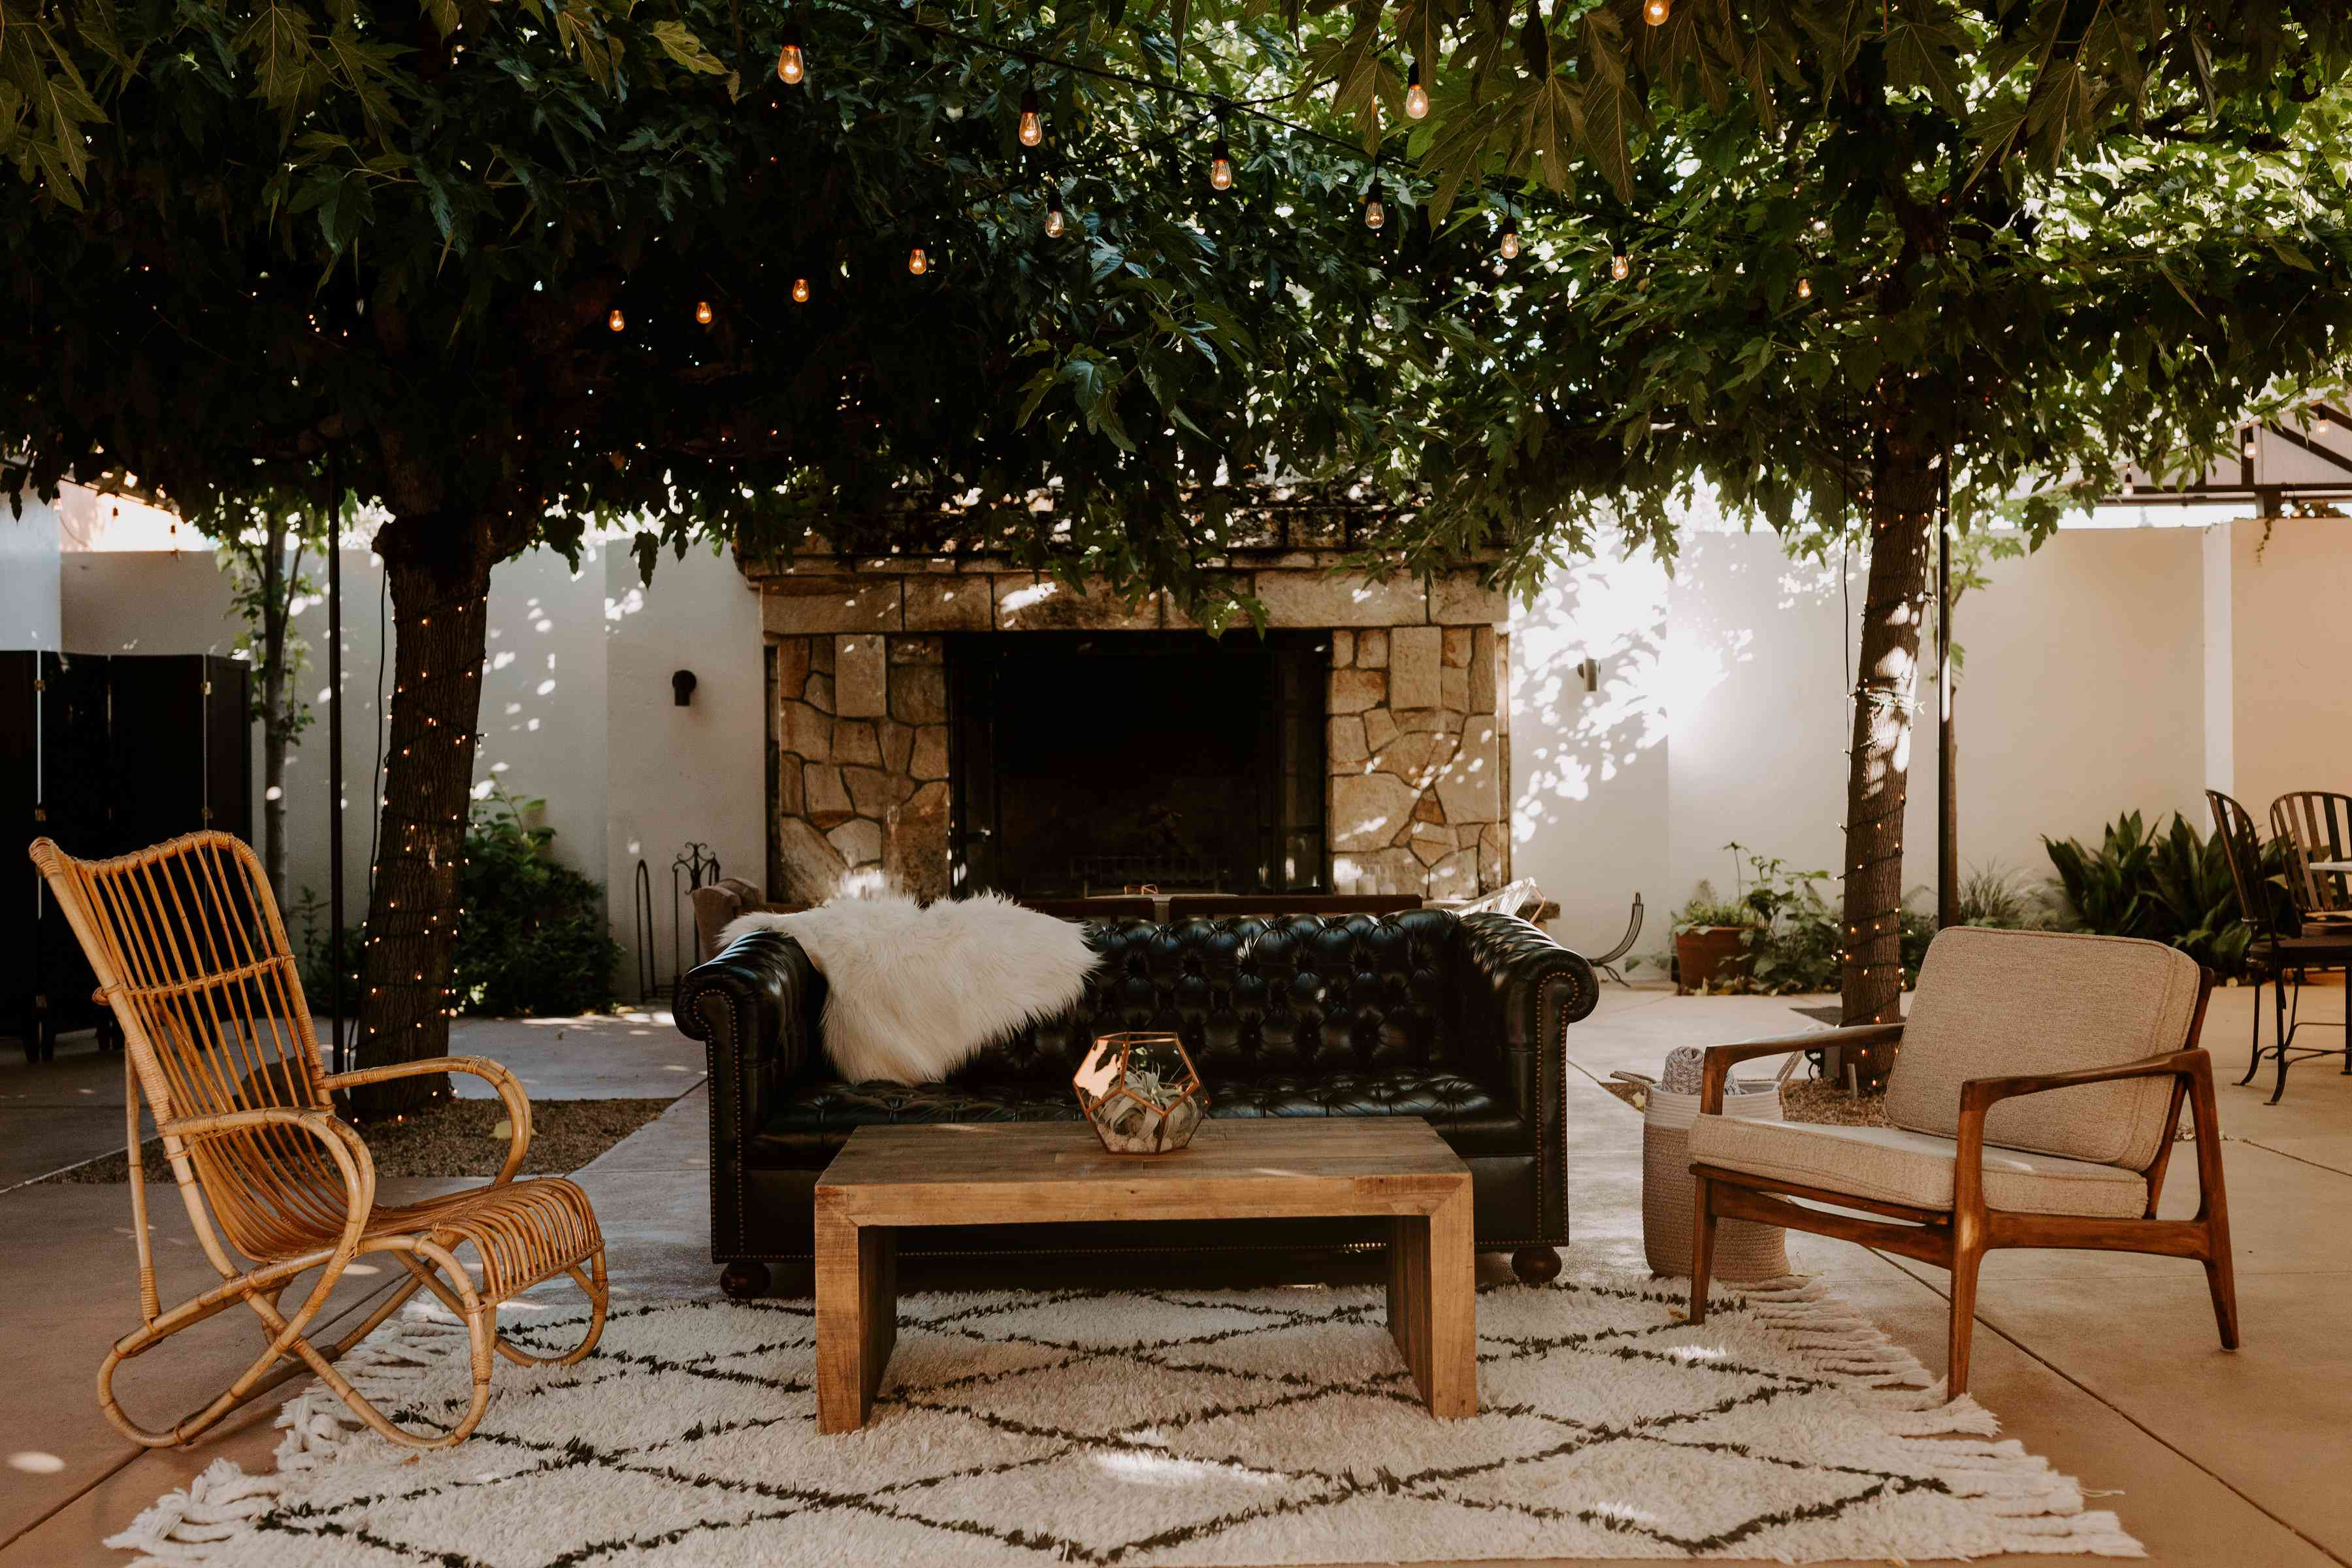 <p>lounge seating cocktail hour</p><br><br>